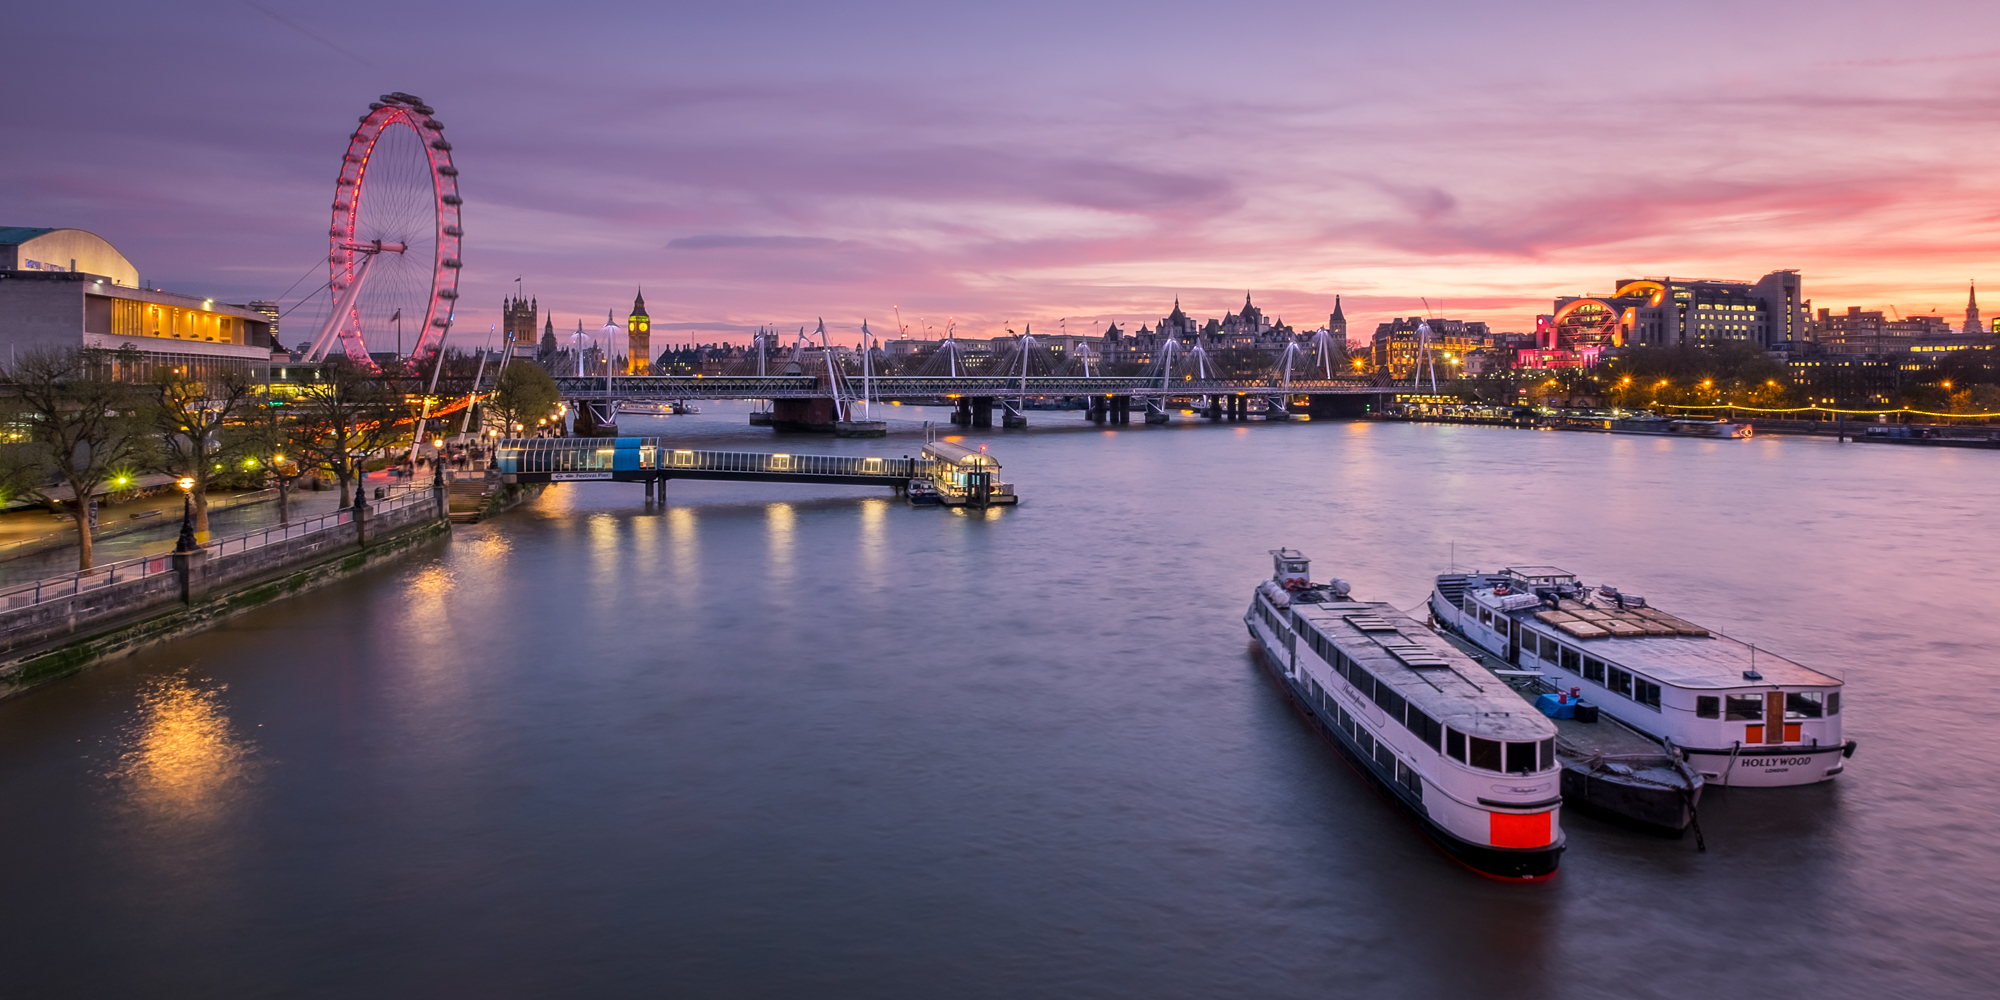 A wide angle photo of The London Eye from the Waterloo Bridge at sunset taken by Trevor Sherwin